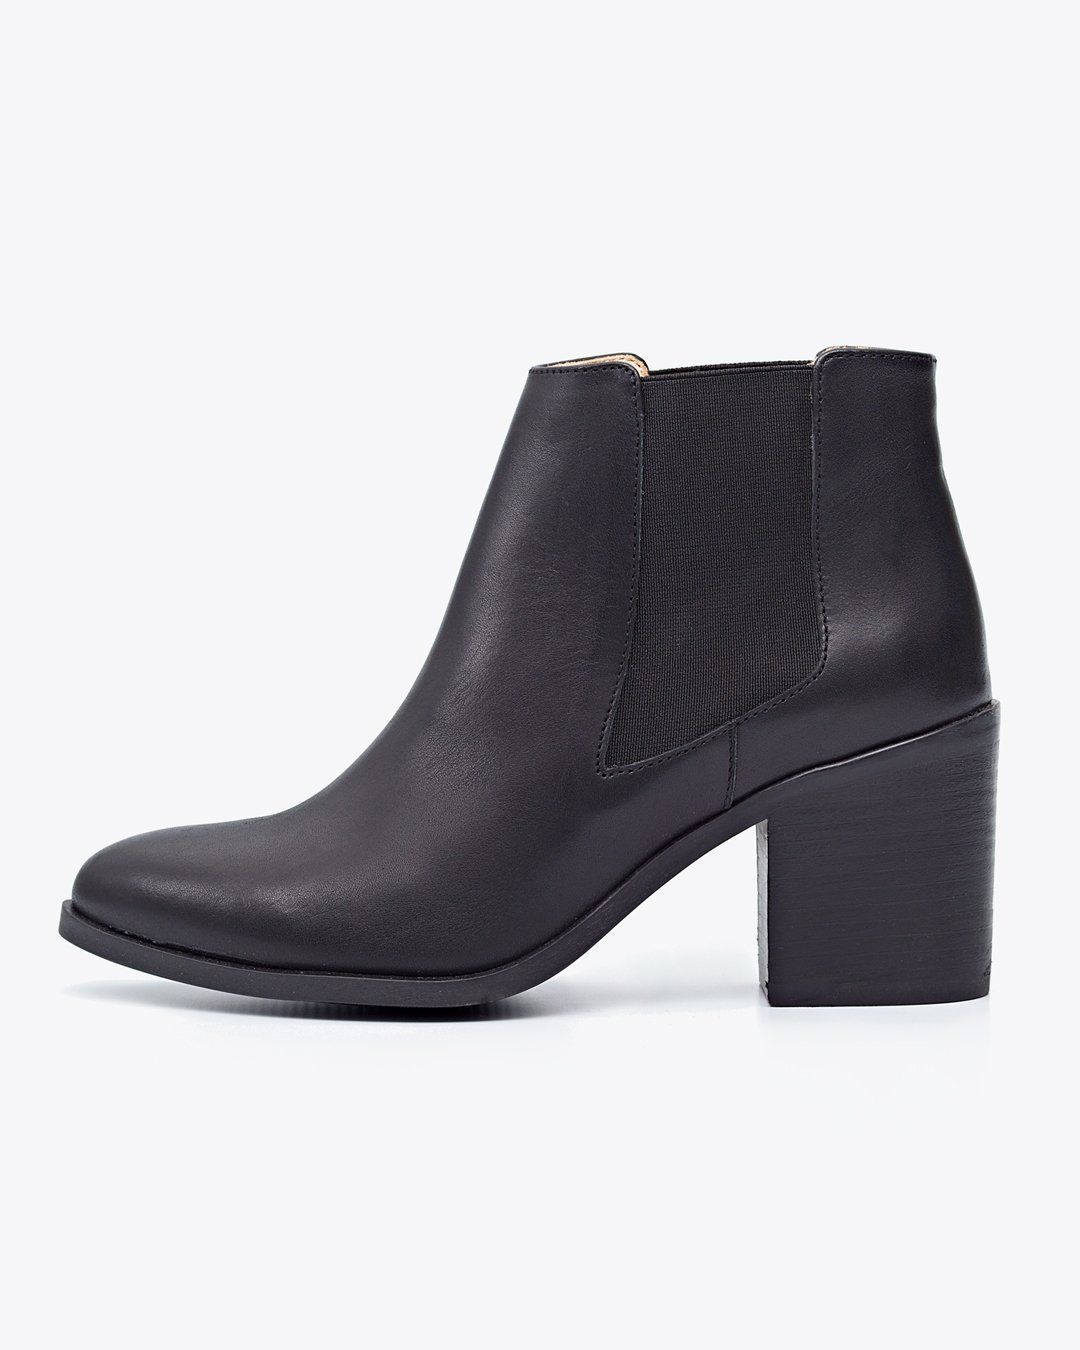 Nisolo Heeled Chelsea Boot Black Women's Leather Boot Nisolo